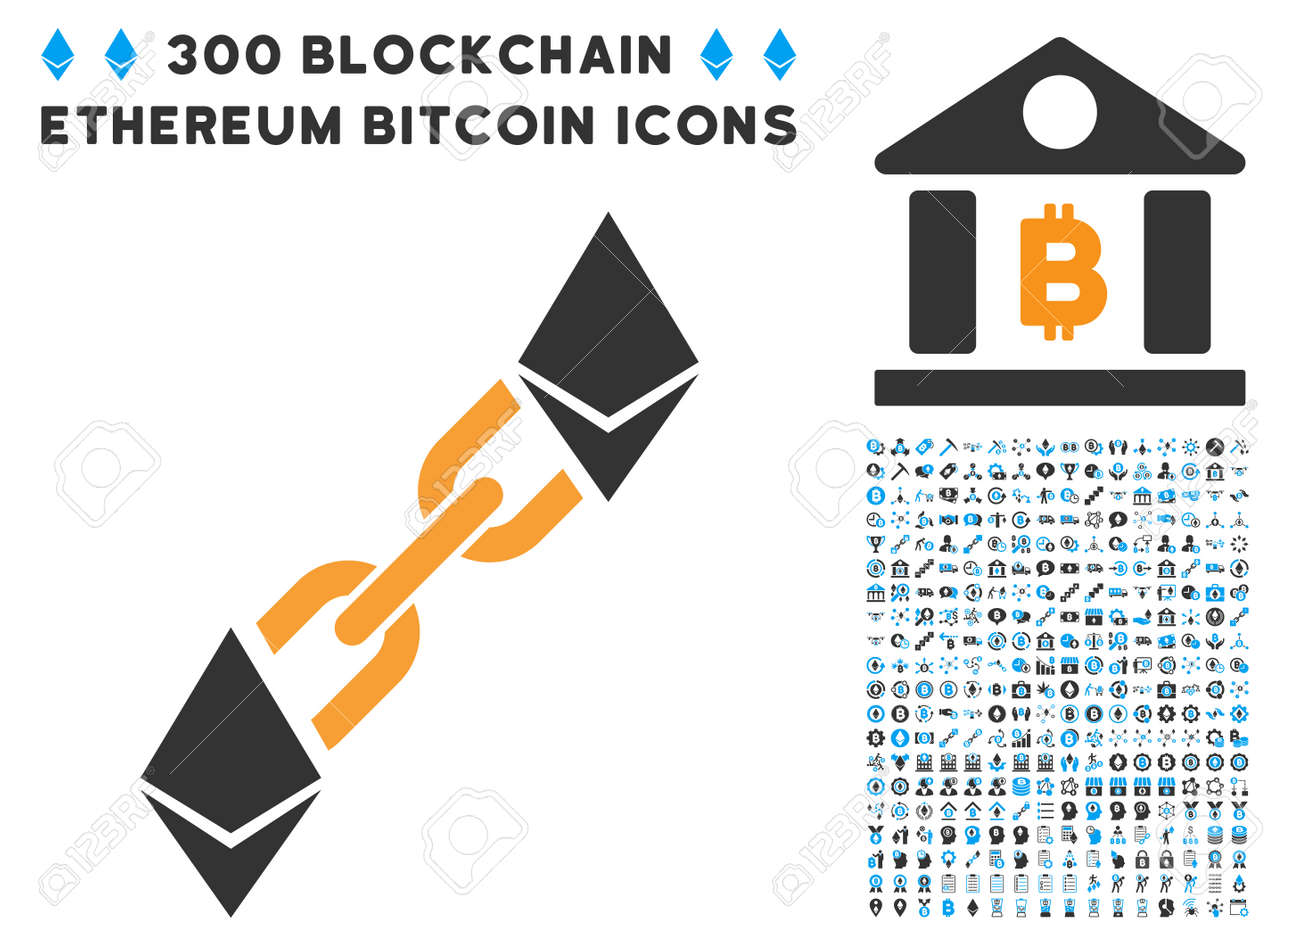 Ethereum Blockchain Pictograph With 300 Bitcoin Smart Contract Design Elements